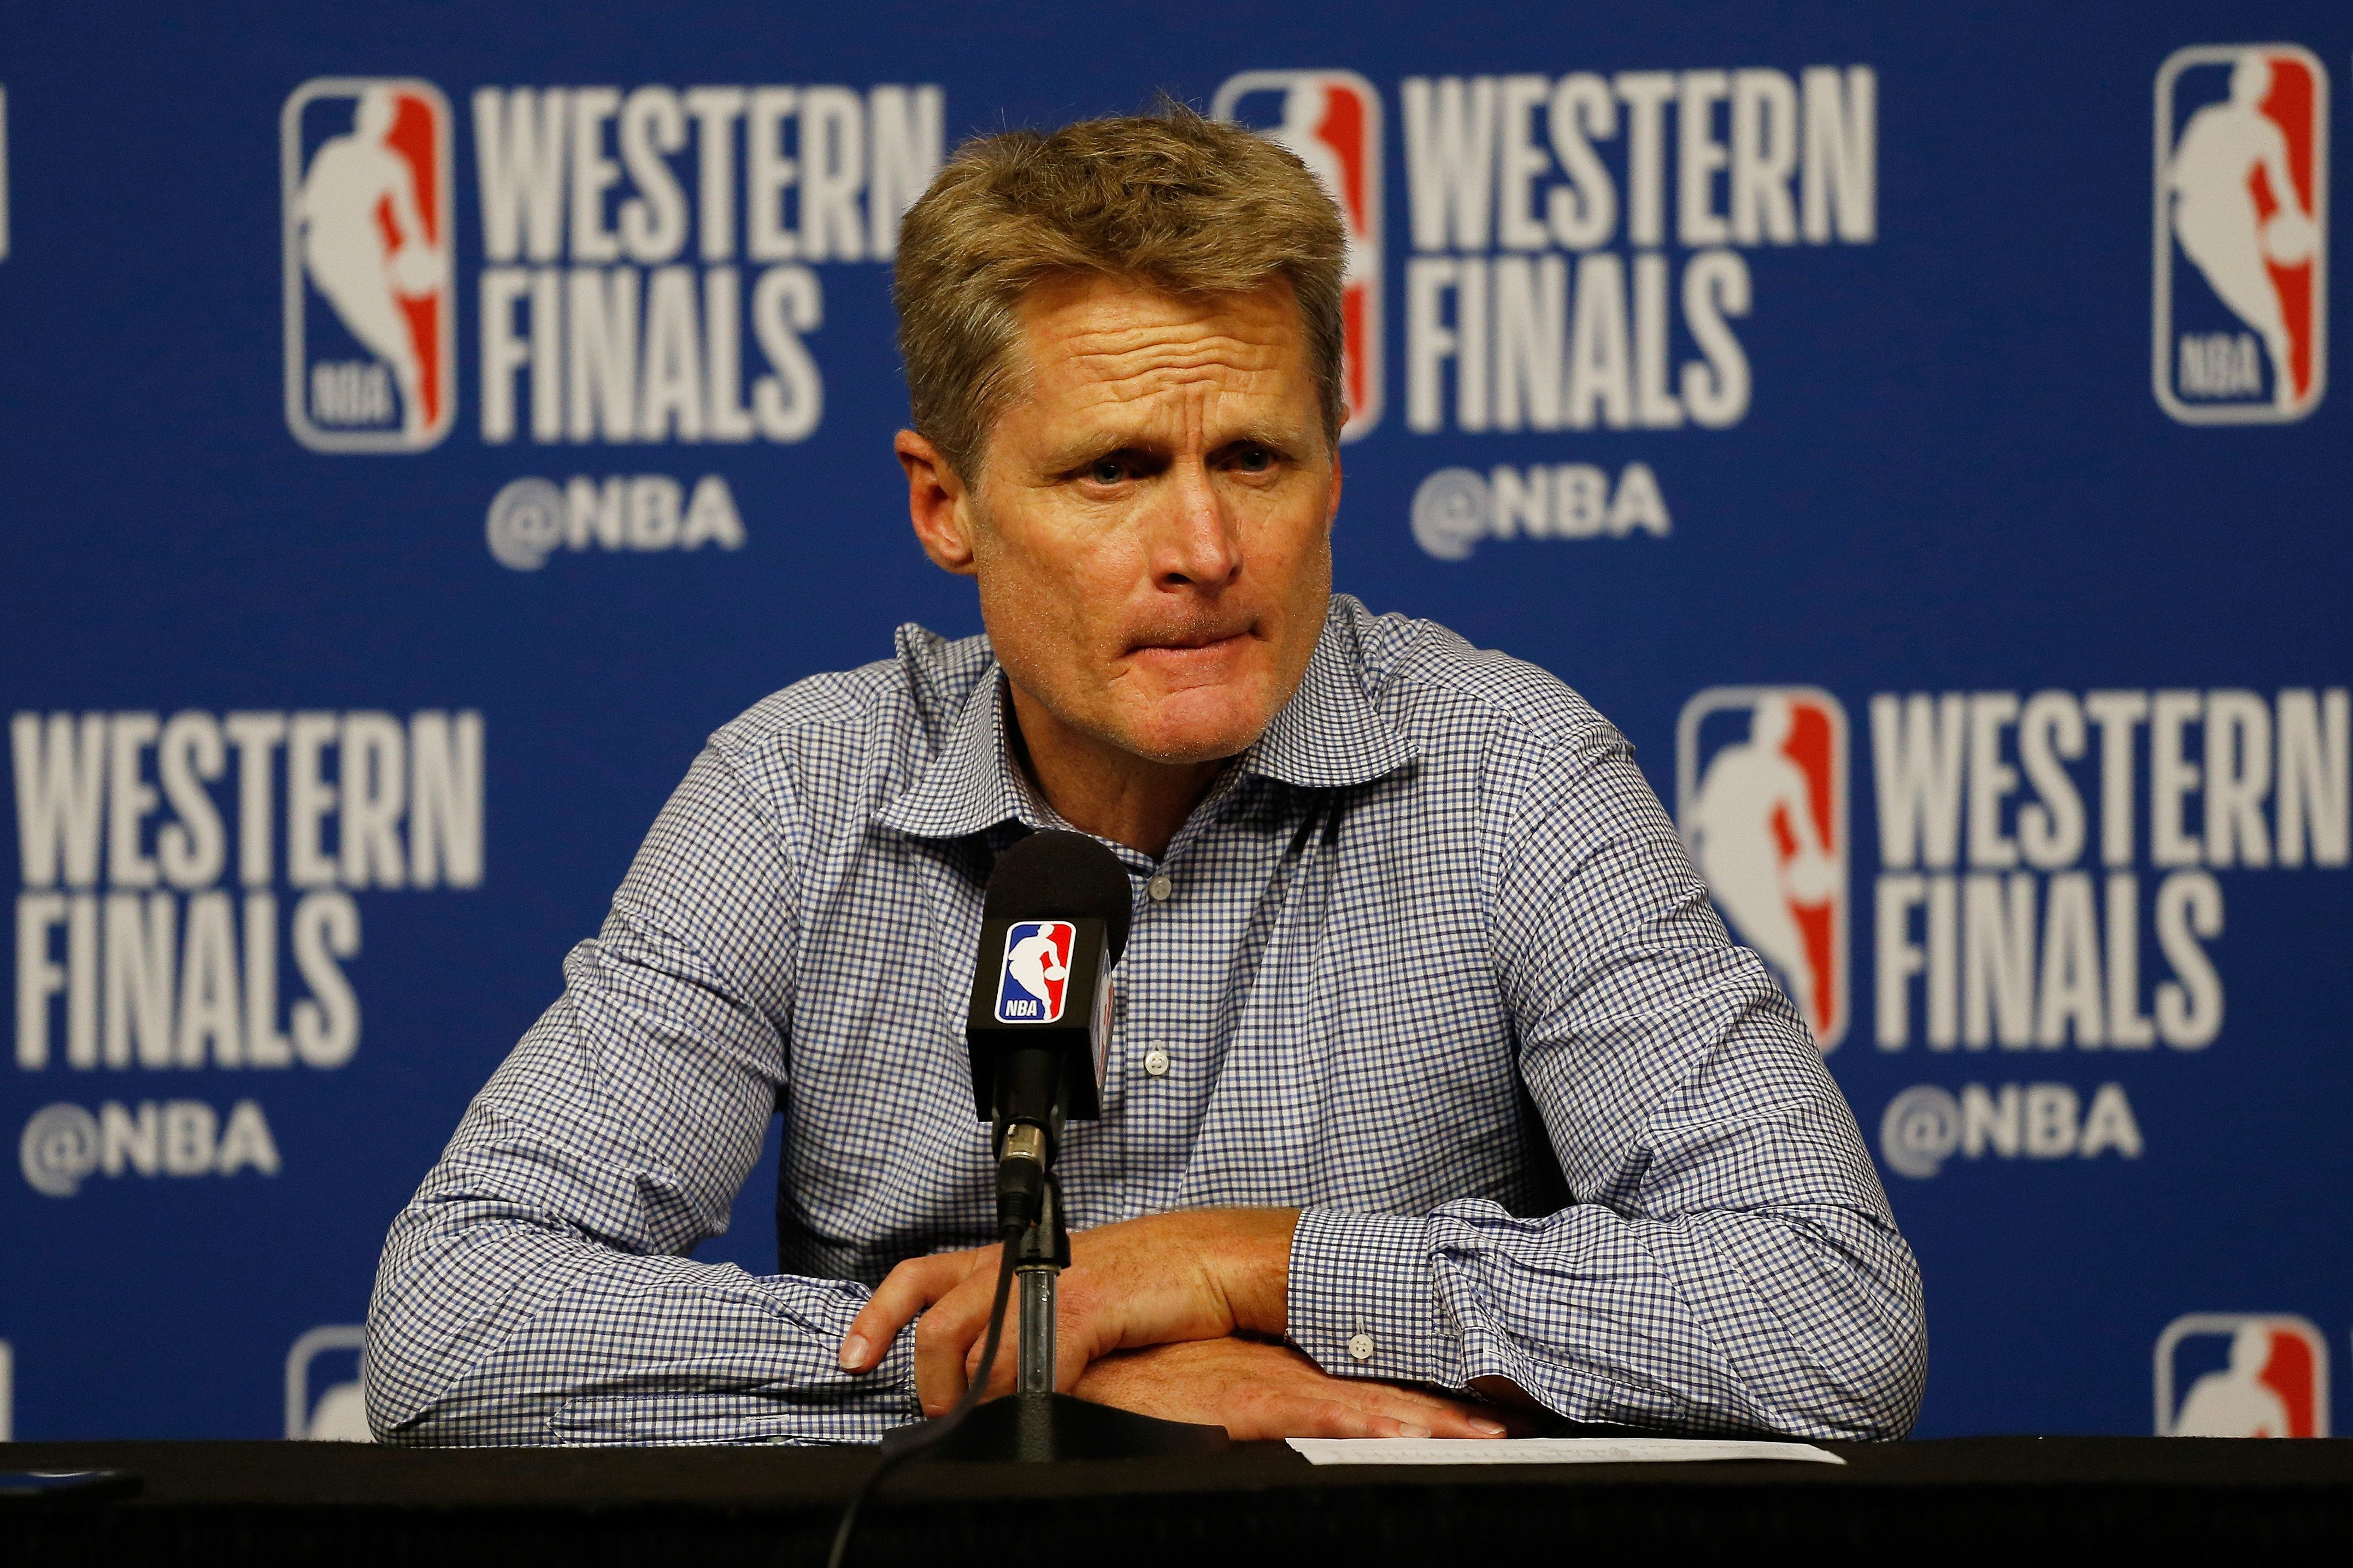 HOUSTON, TX - MAY 24:  Head coach Steve Kerr of the Golden State Warriors speaks to the media after their 94 to 98 loss to the Houston Rockets in Game Five of the Western Conference Finals of the 2018 NBA Playoffs at Toyota Center on May 24, 2018 in Houston, Texas.  (Photo by Bob Levey/Getty Images)